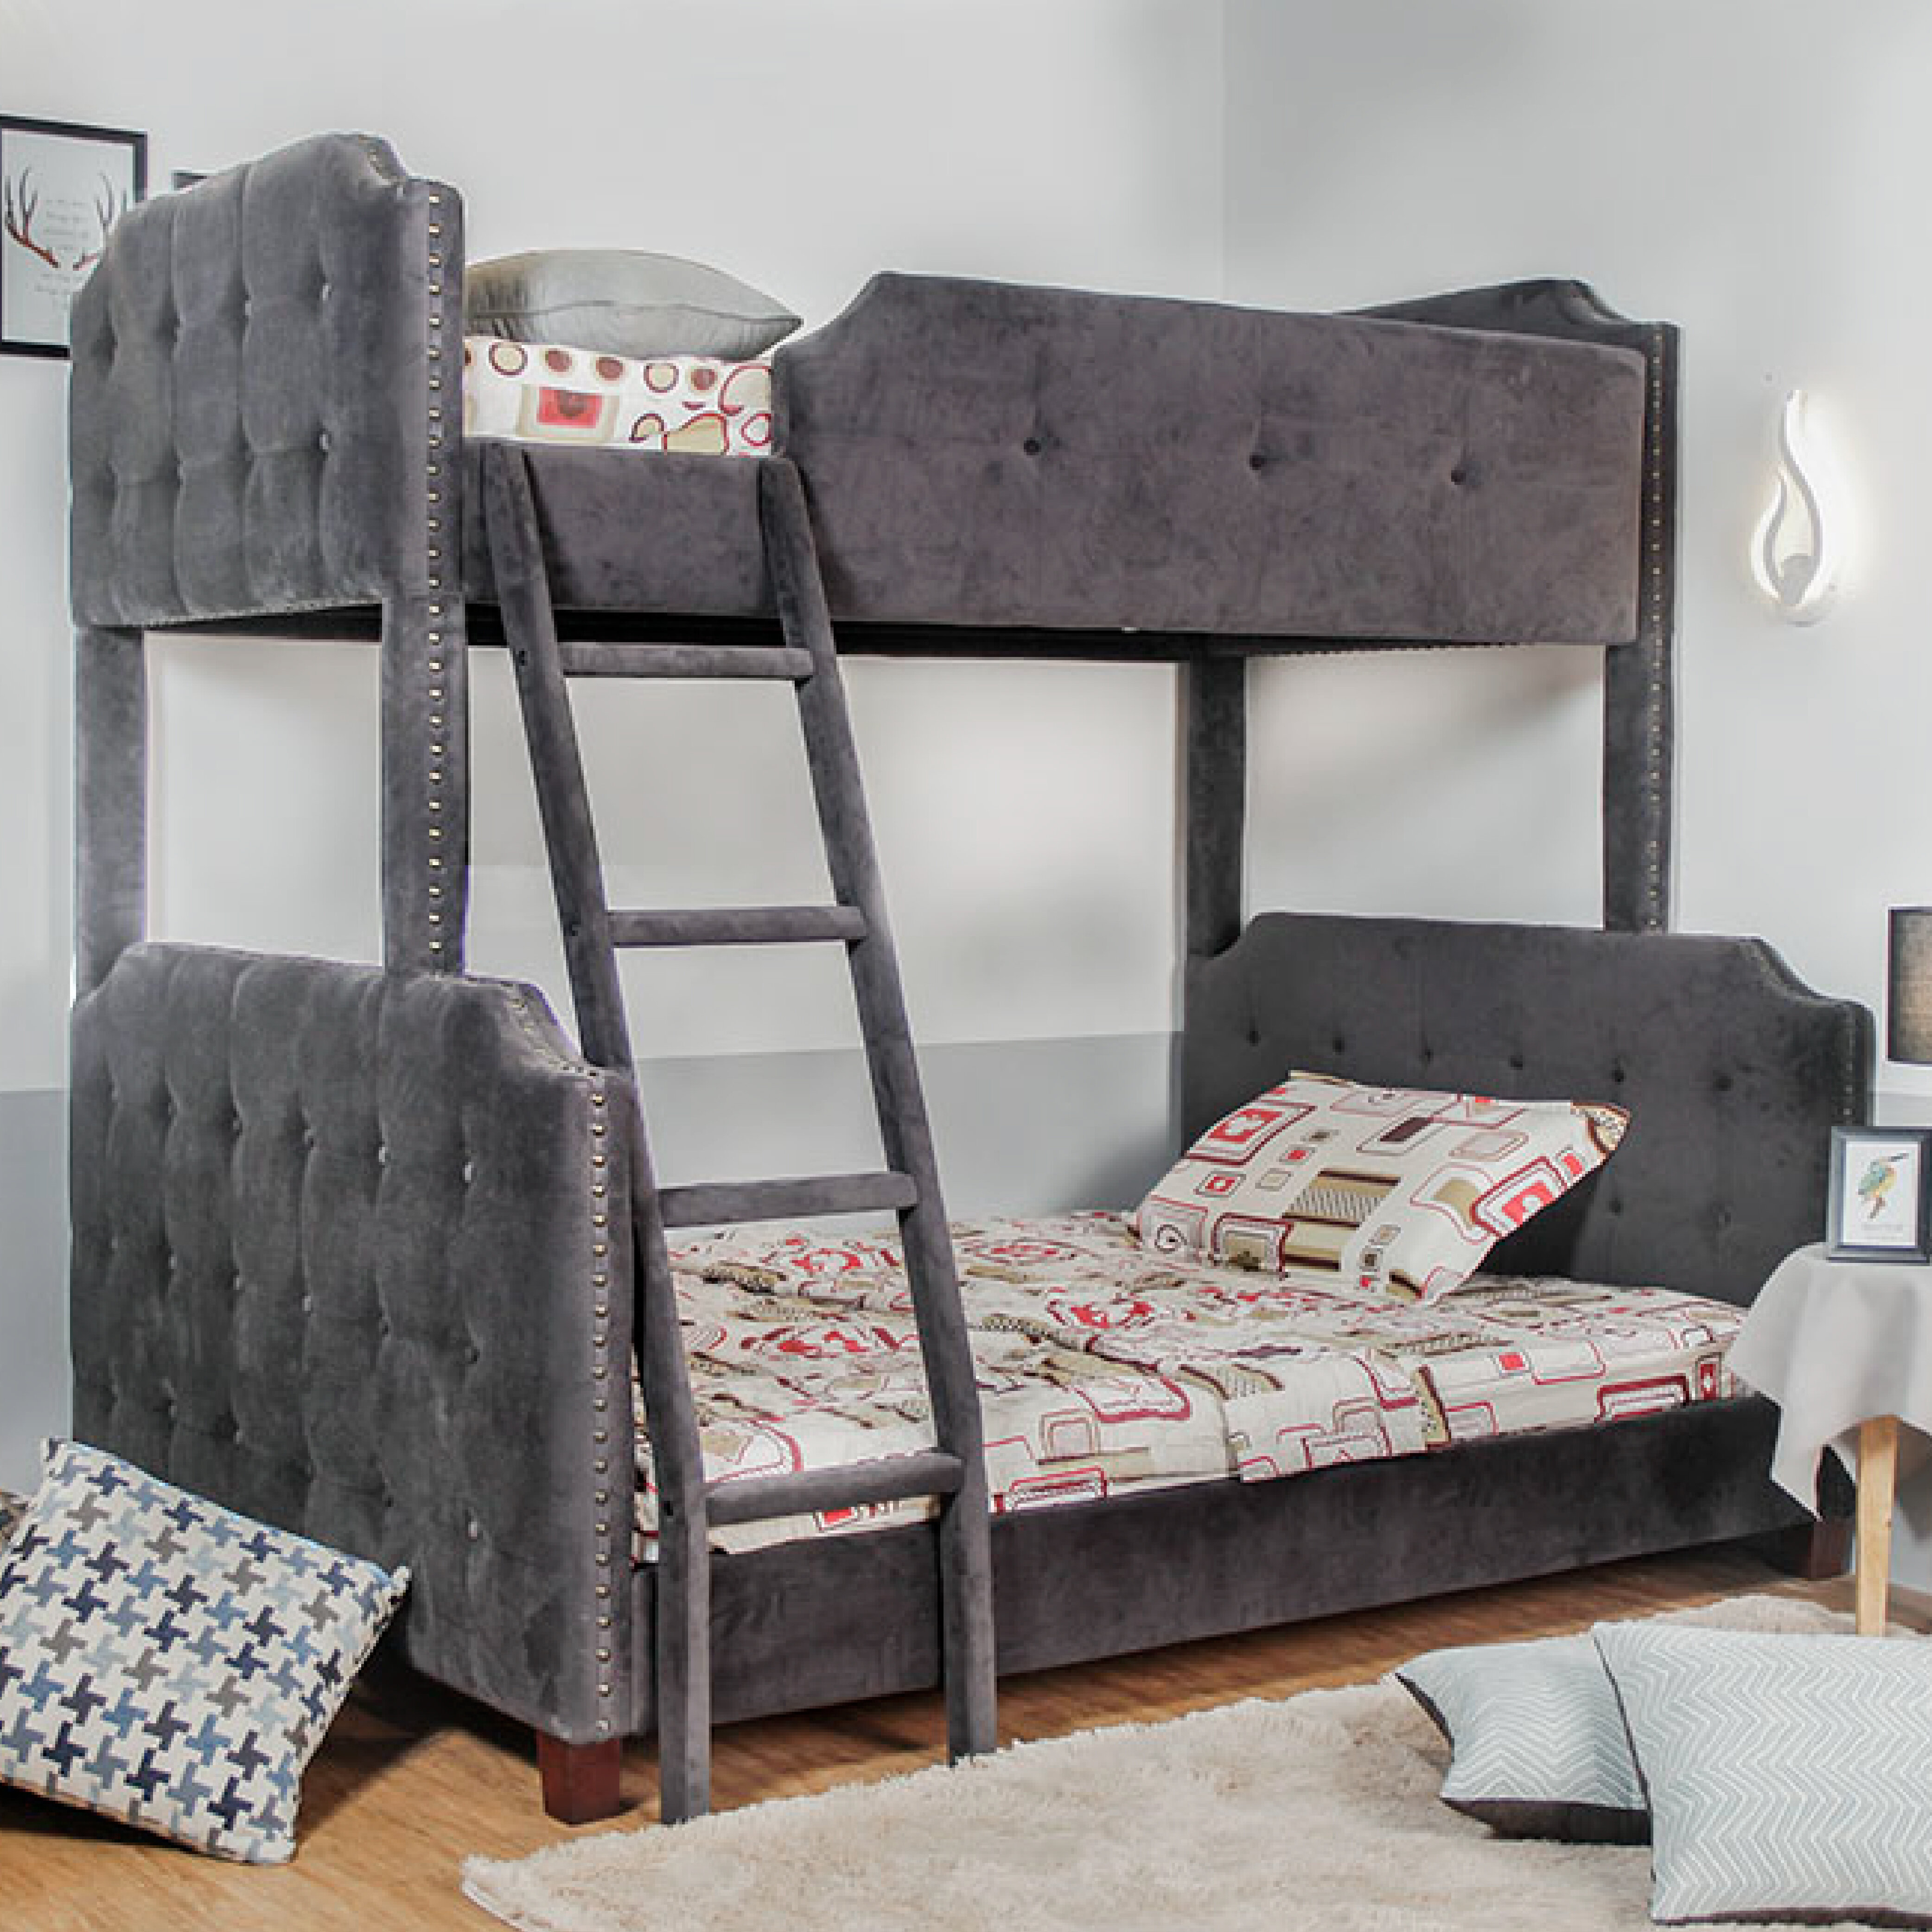 Darby Home Co Mcintire Twin Over Full Upholstered Bunk Bed Reviews Wayfair